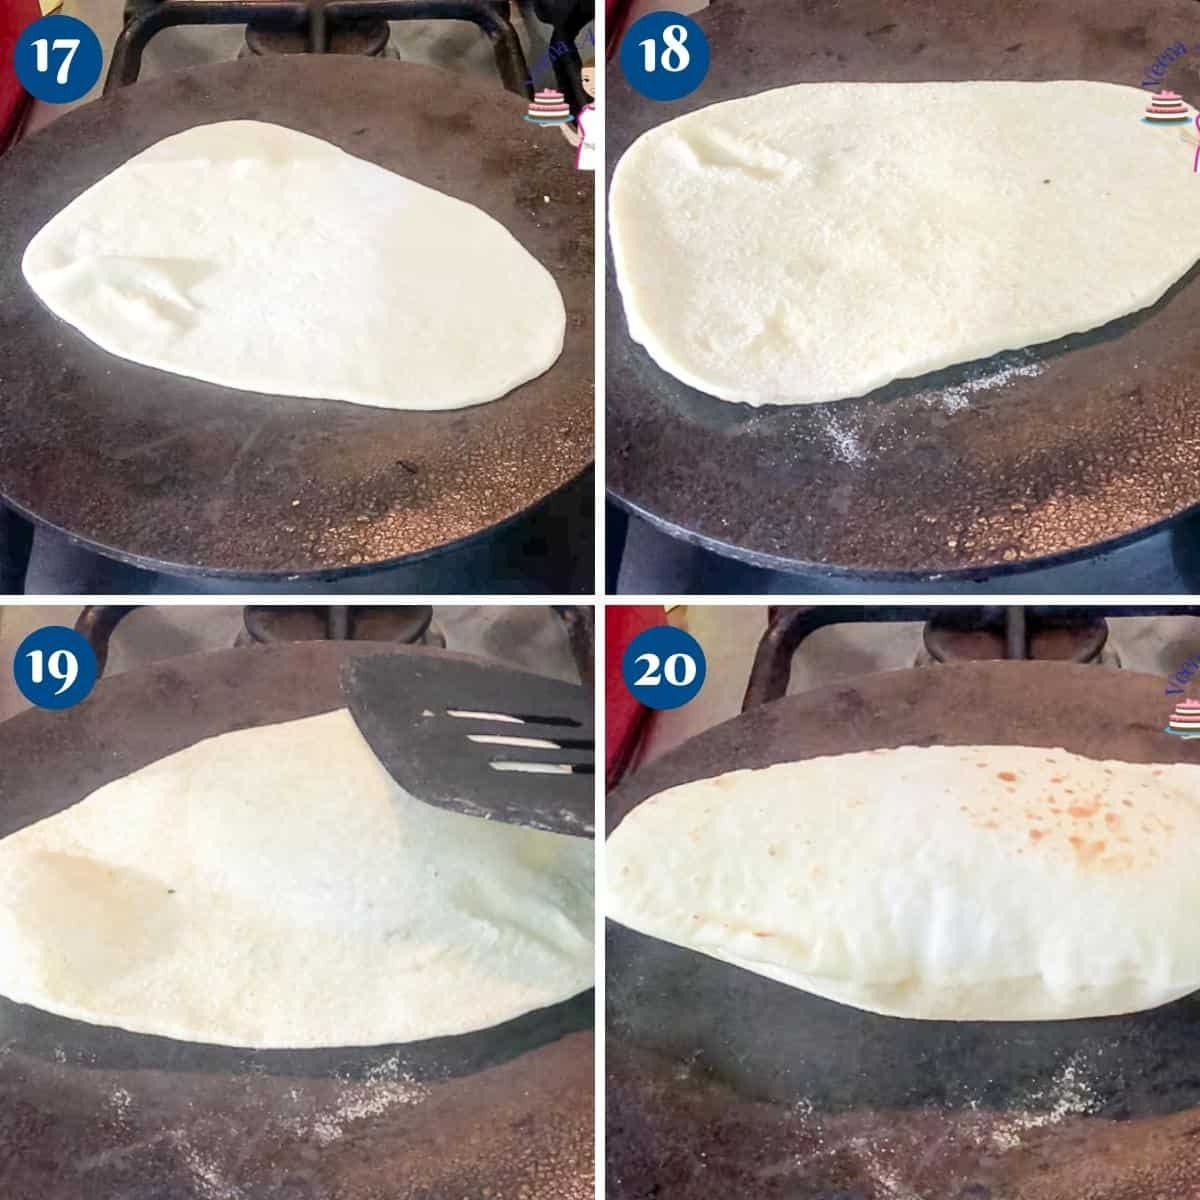 Progress pictures collage cooking the naan bread.